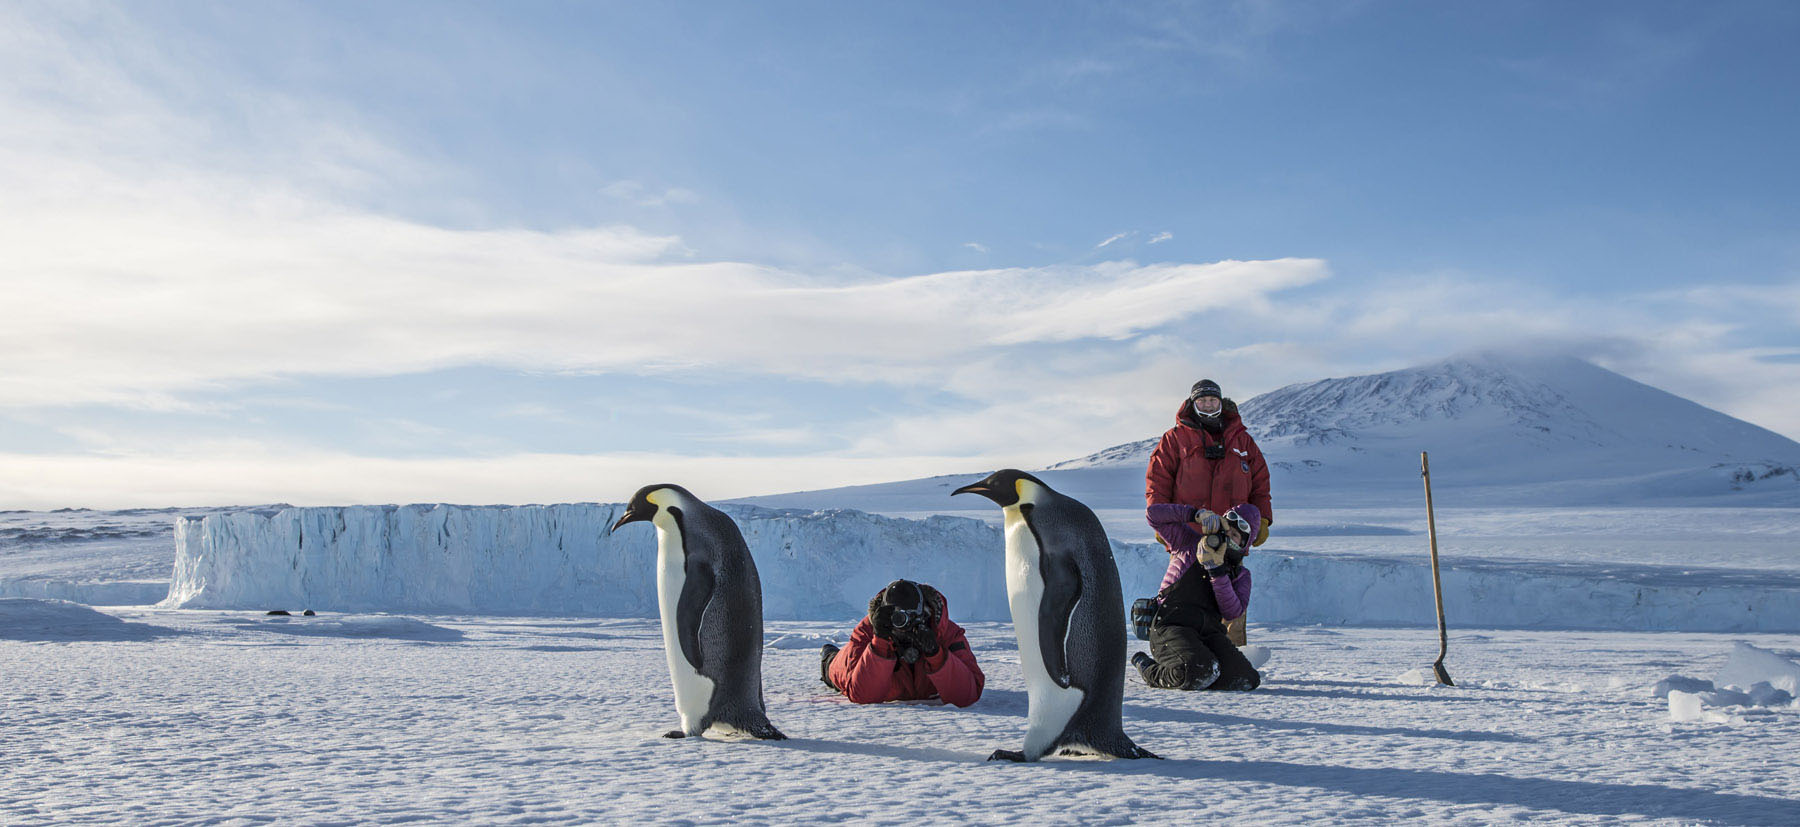 Photographers snap images of penguins in Antarctica.